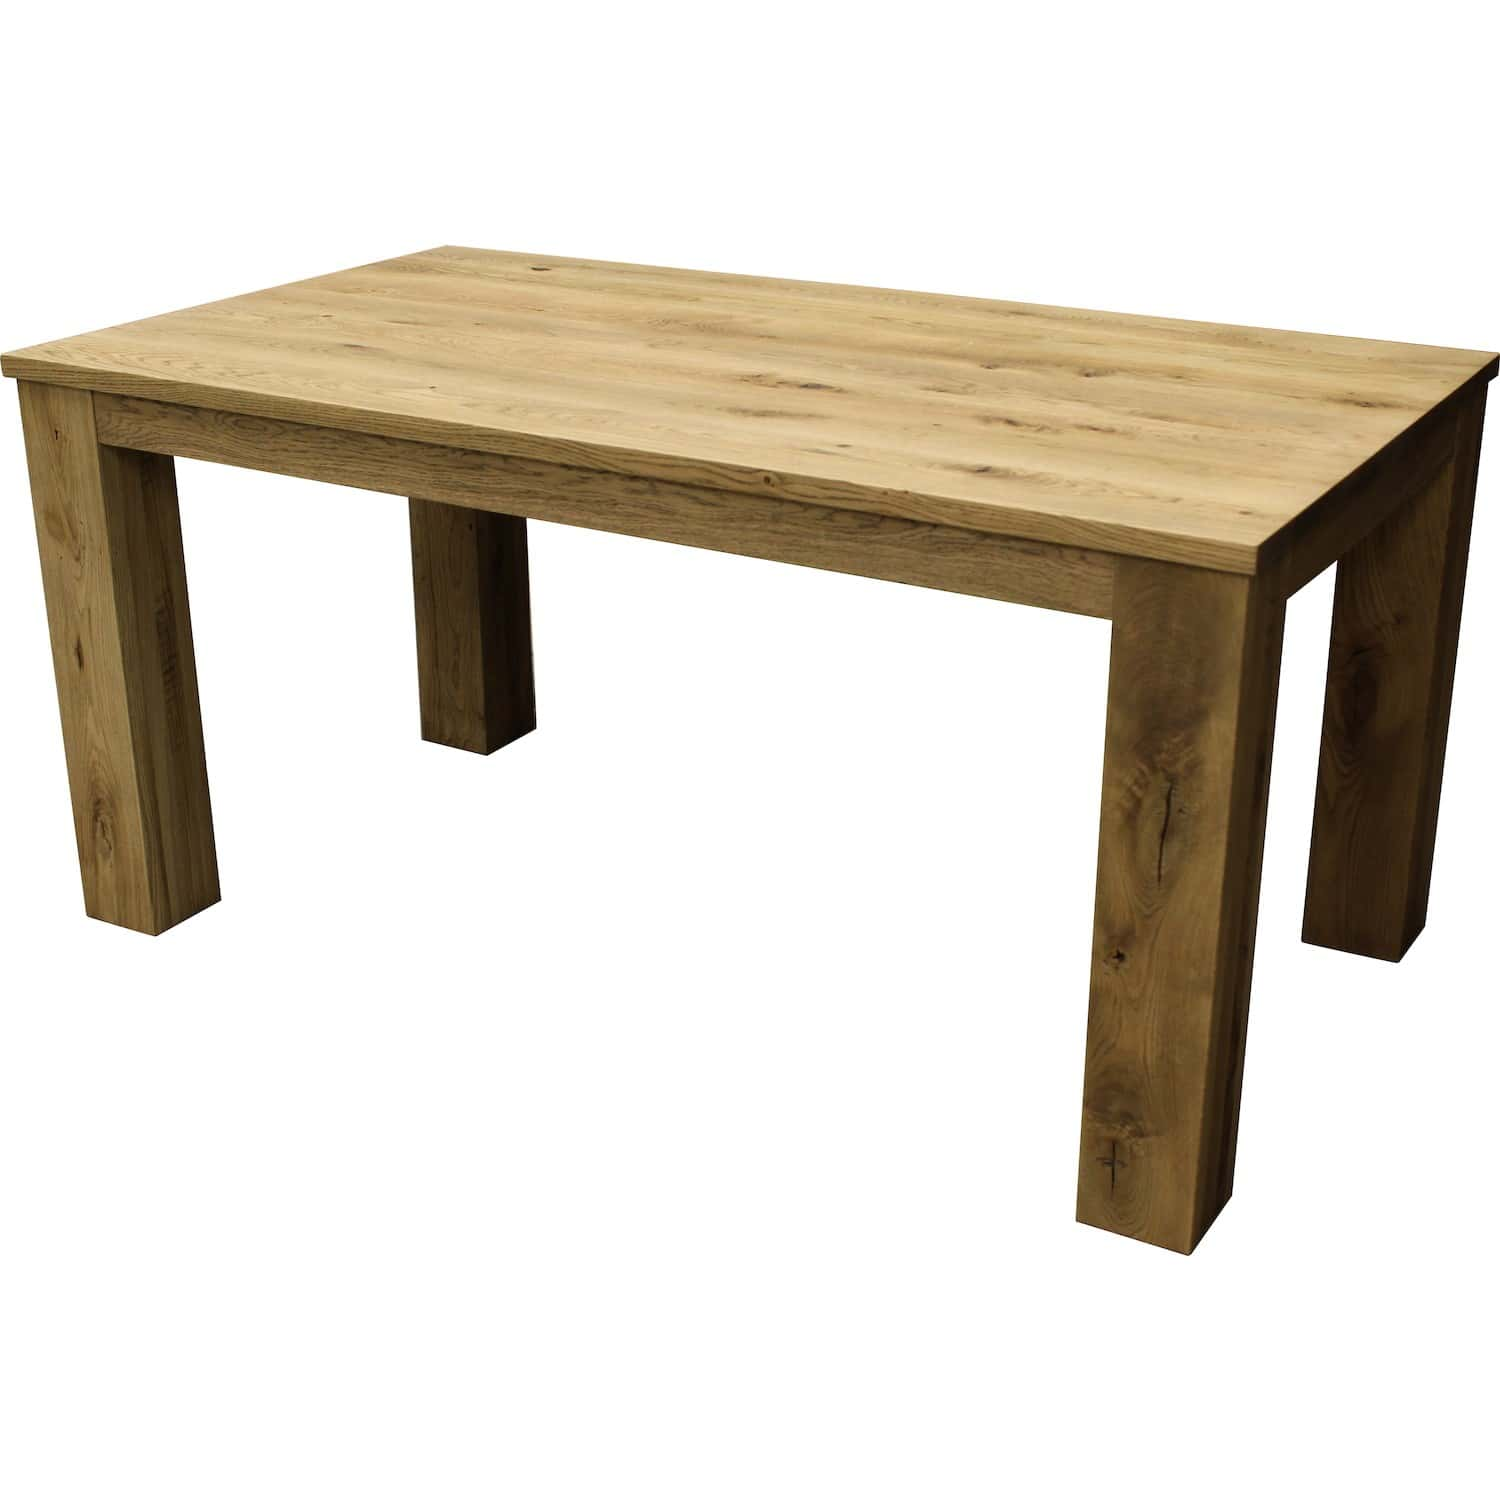 Table rectangulaire en ch ne massif avec allonge int gr e jbf - Table rectangulaire chene massif ...